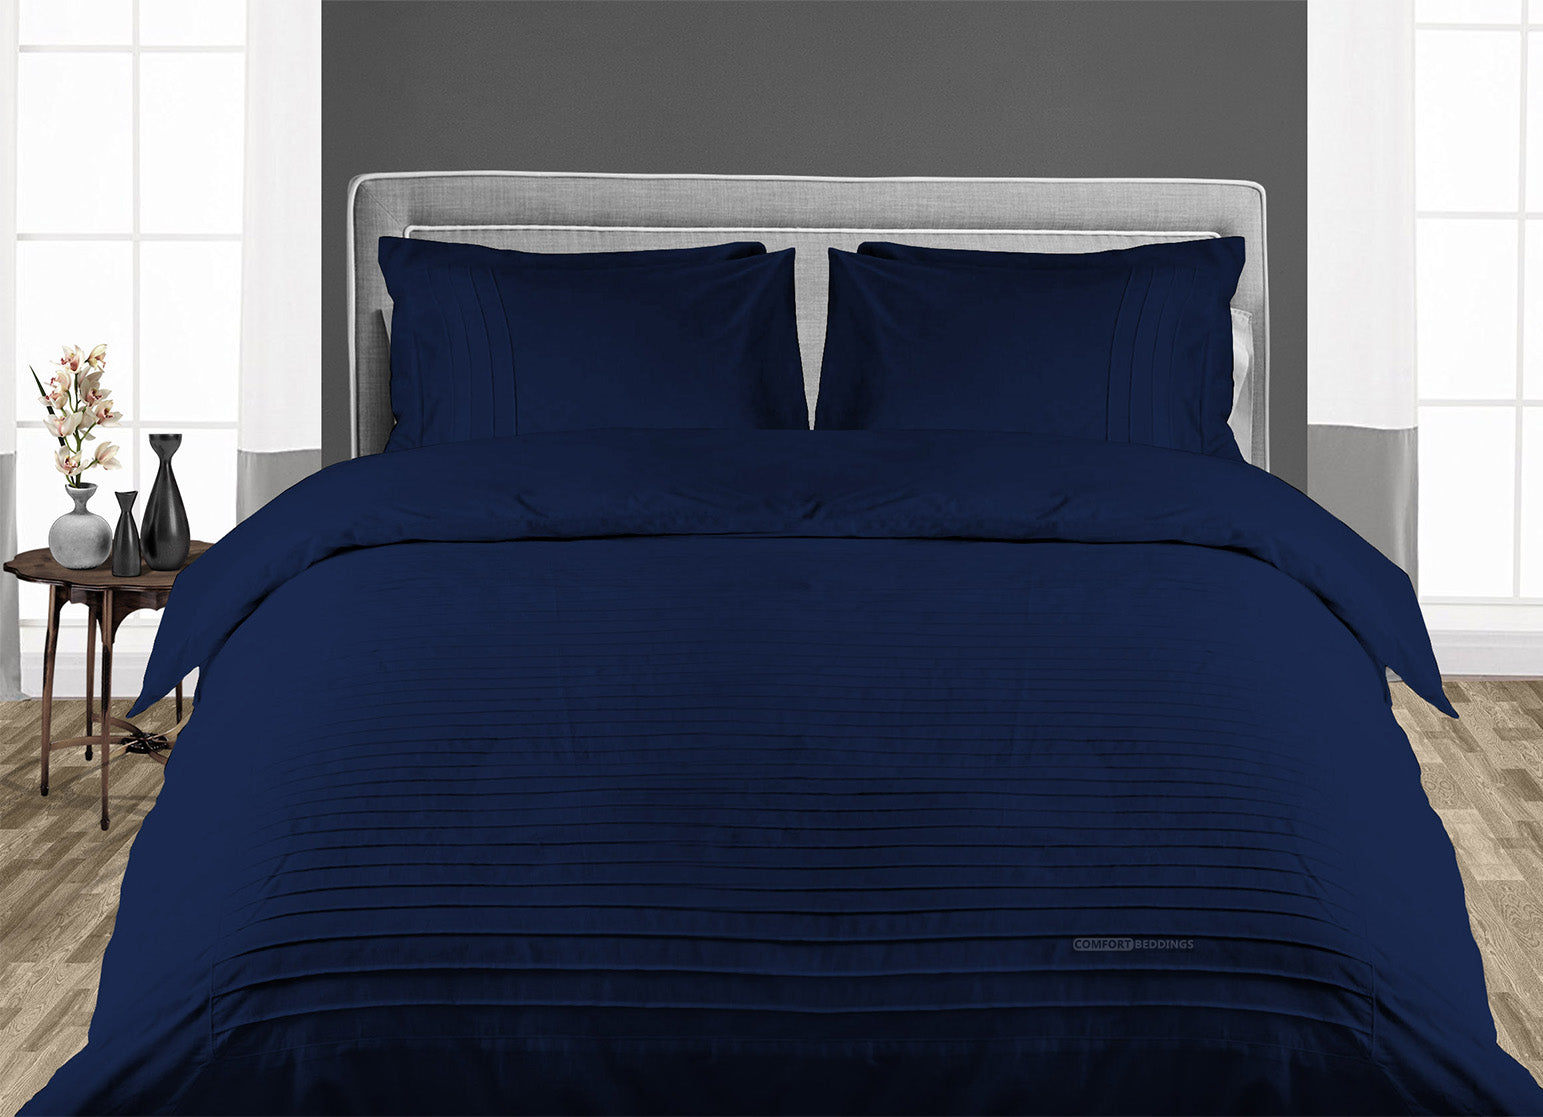 Original Navy Blue Moroccan Streak Duvet Cover And Pillowcases